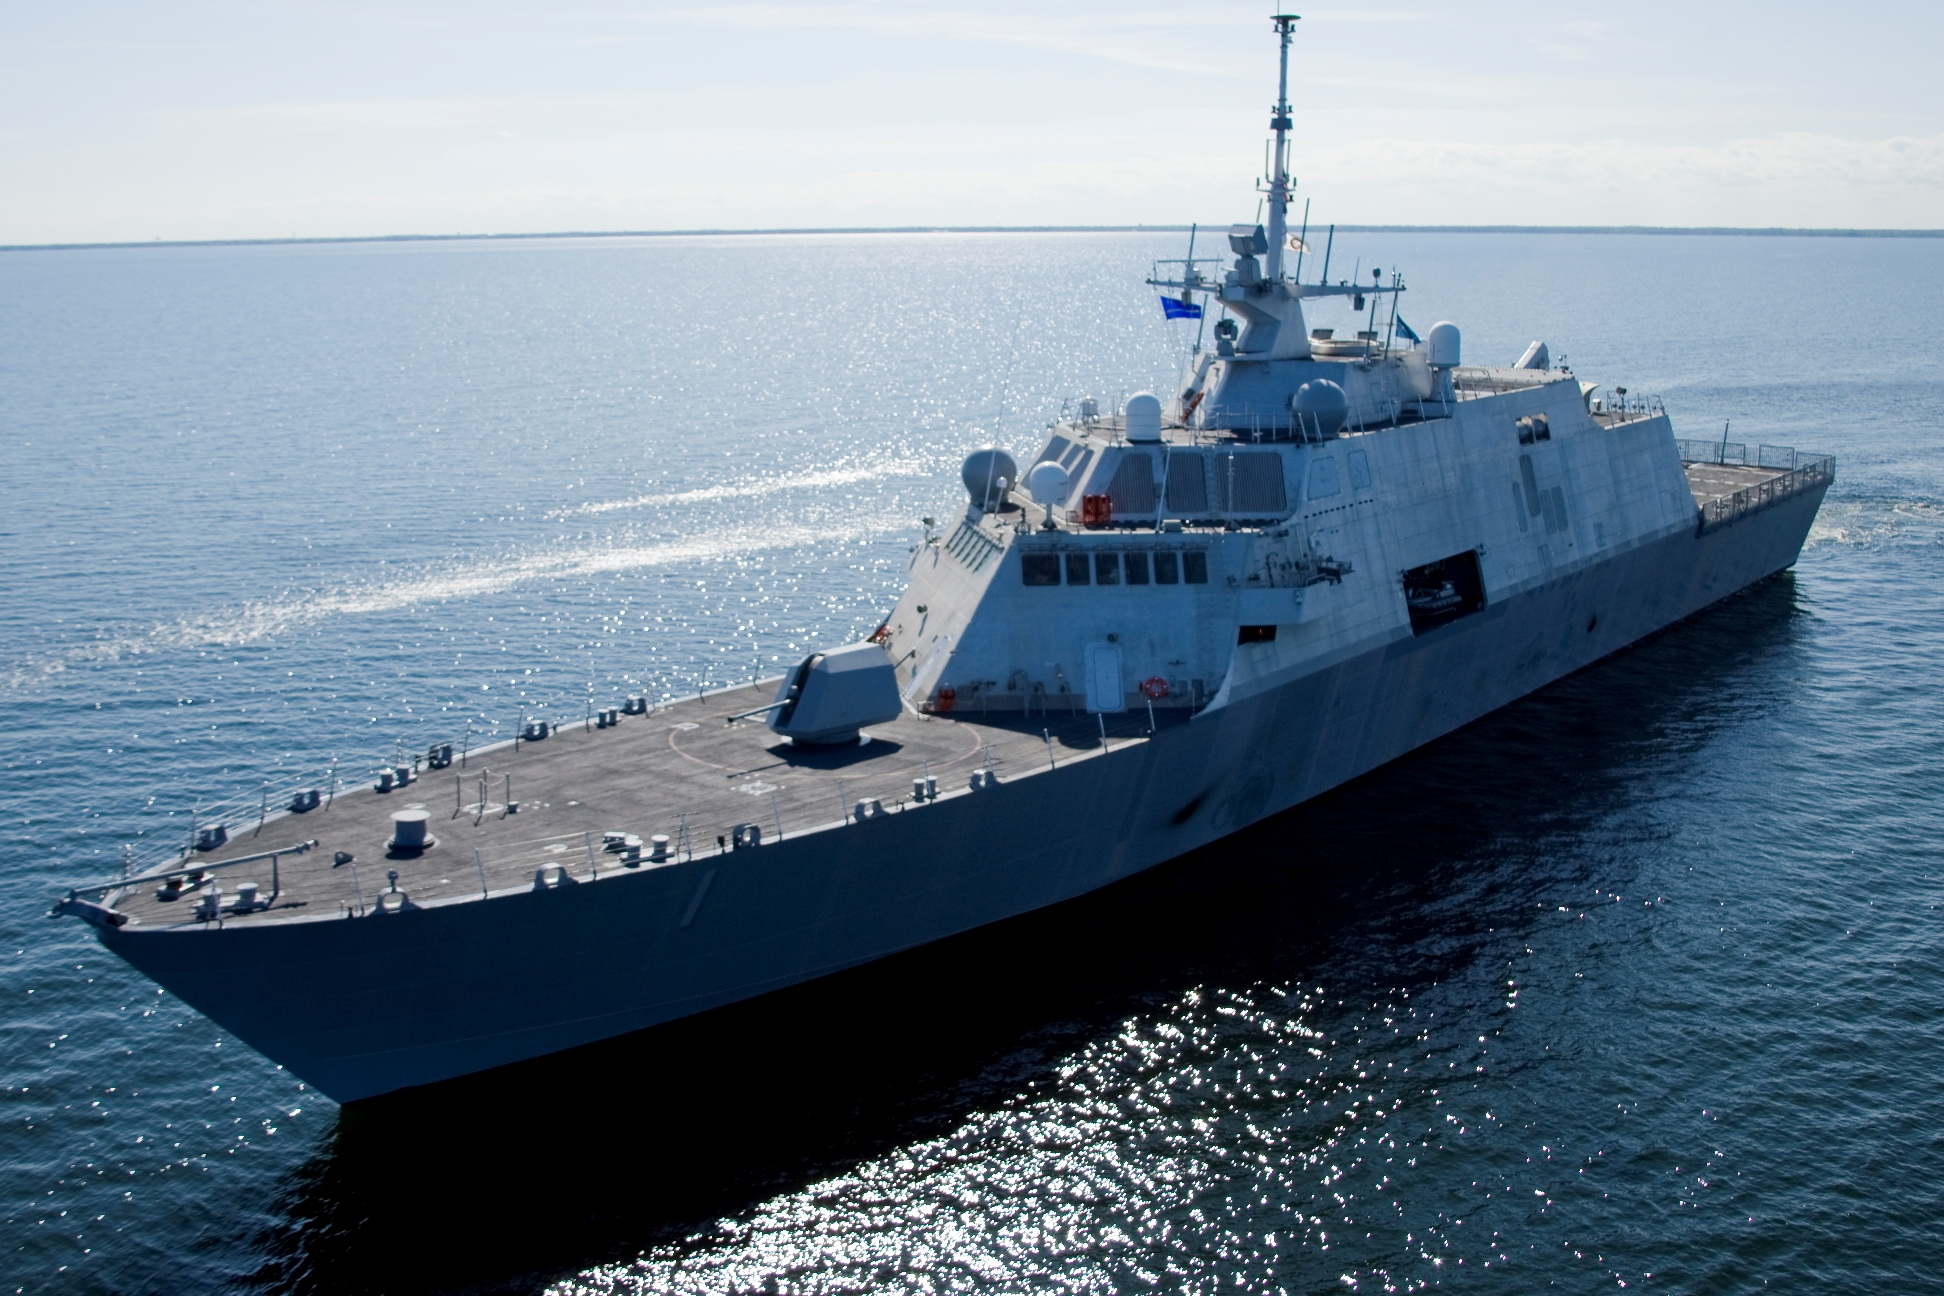 U.S Navy to name combat ship USS Billings